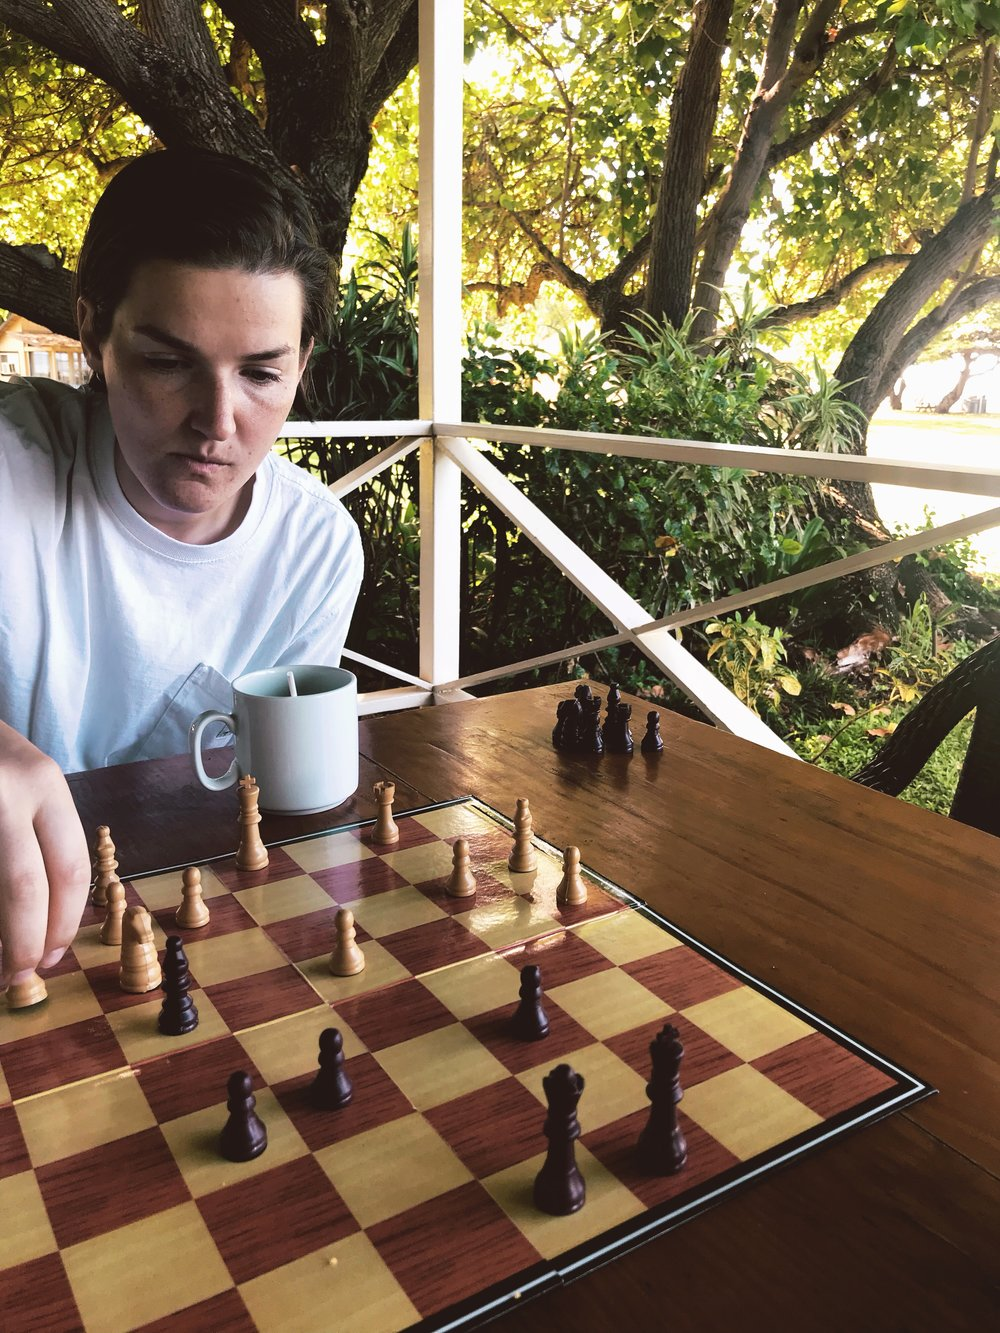 Chess_Outdoors